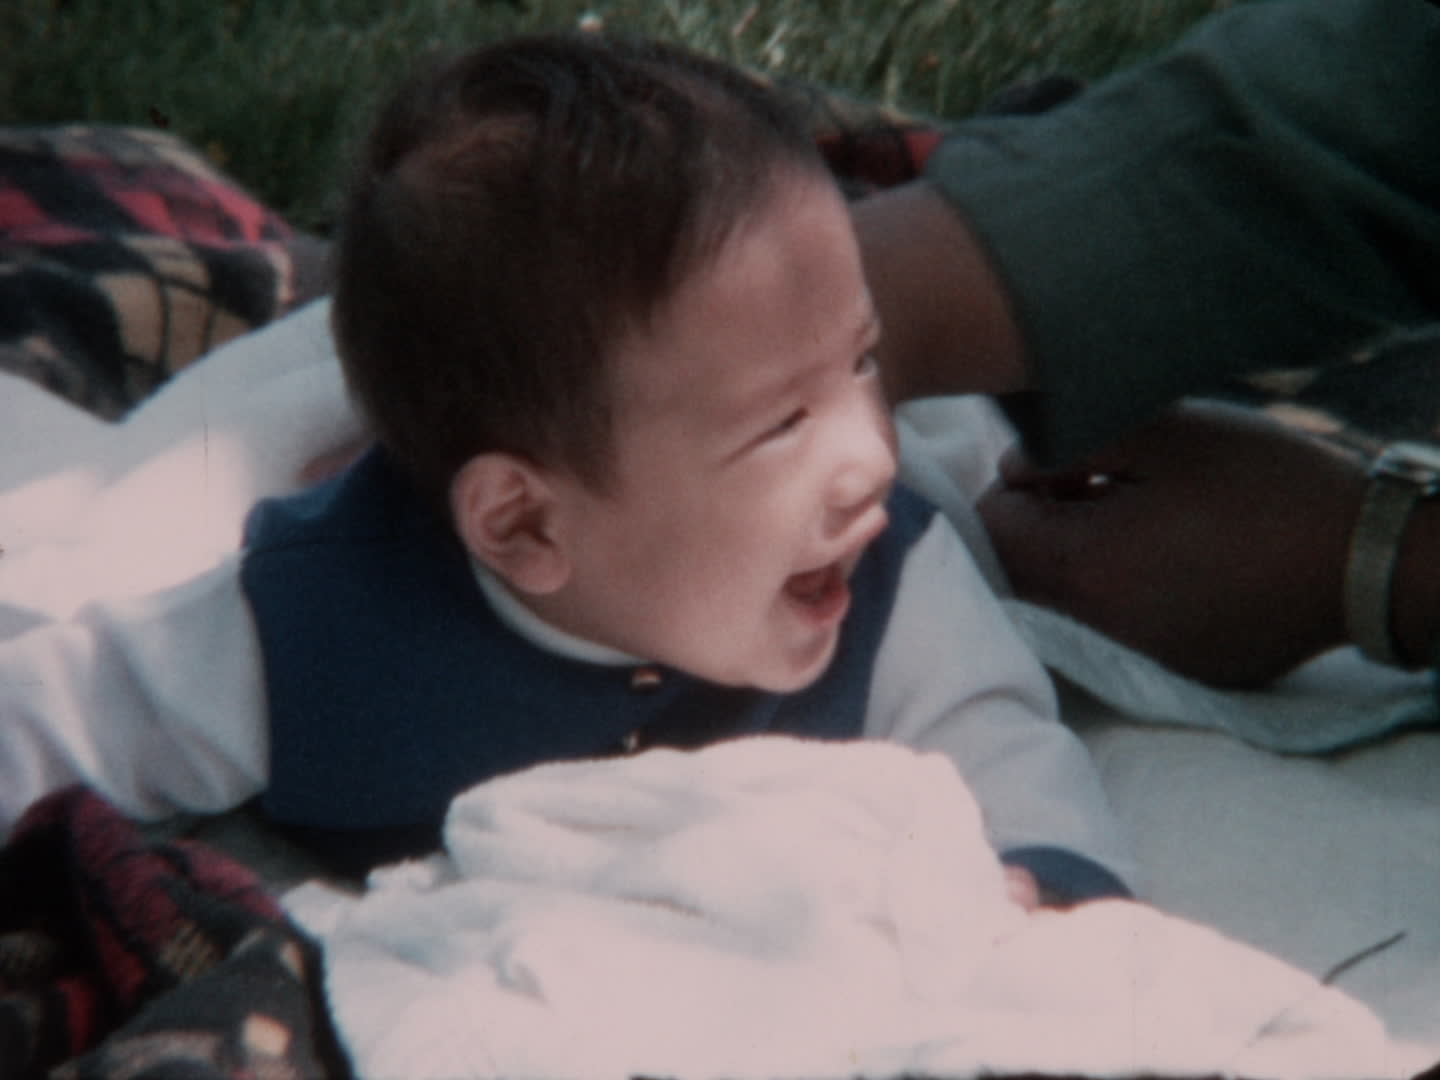 Watada family videos : baby outside smiling